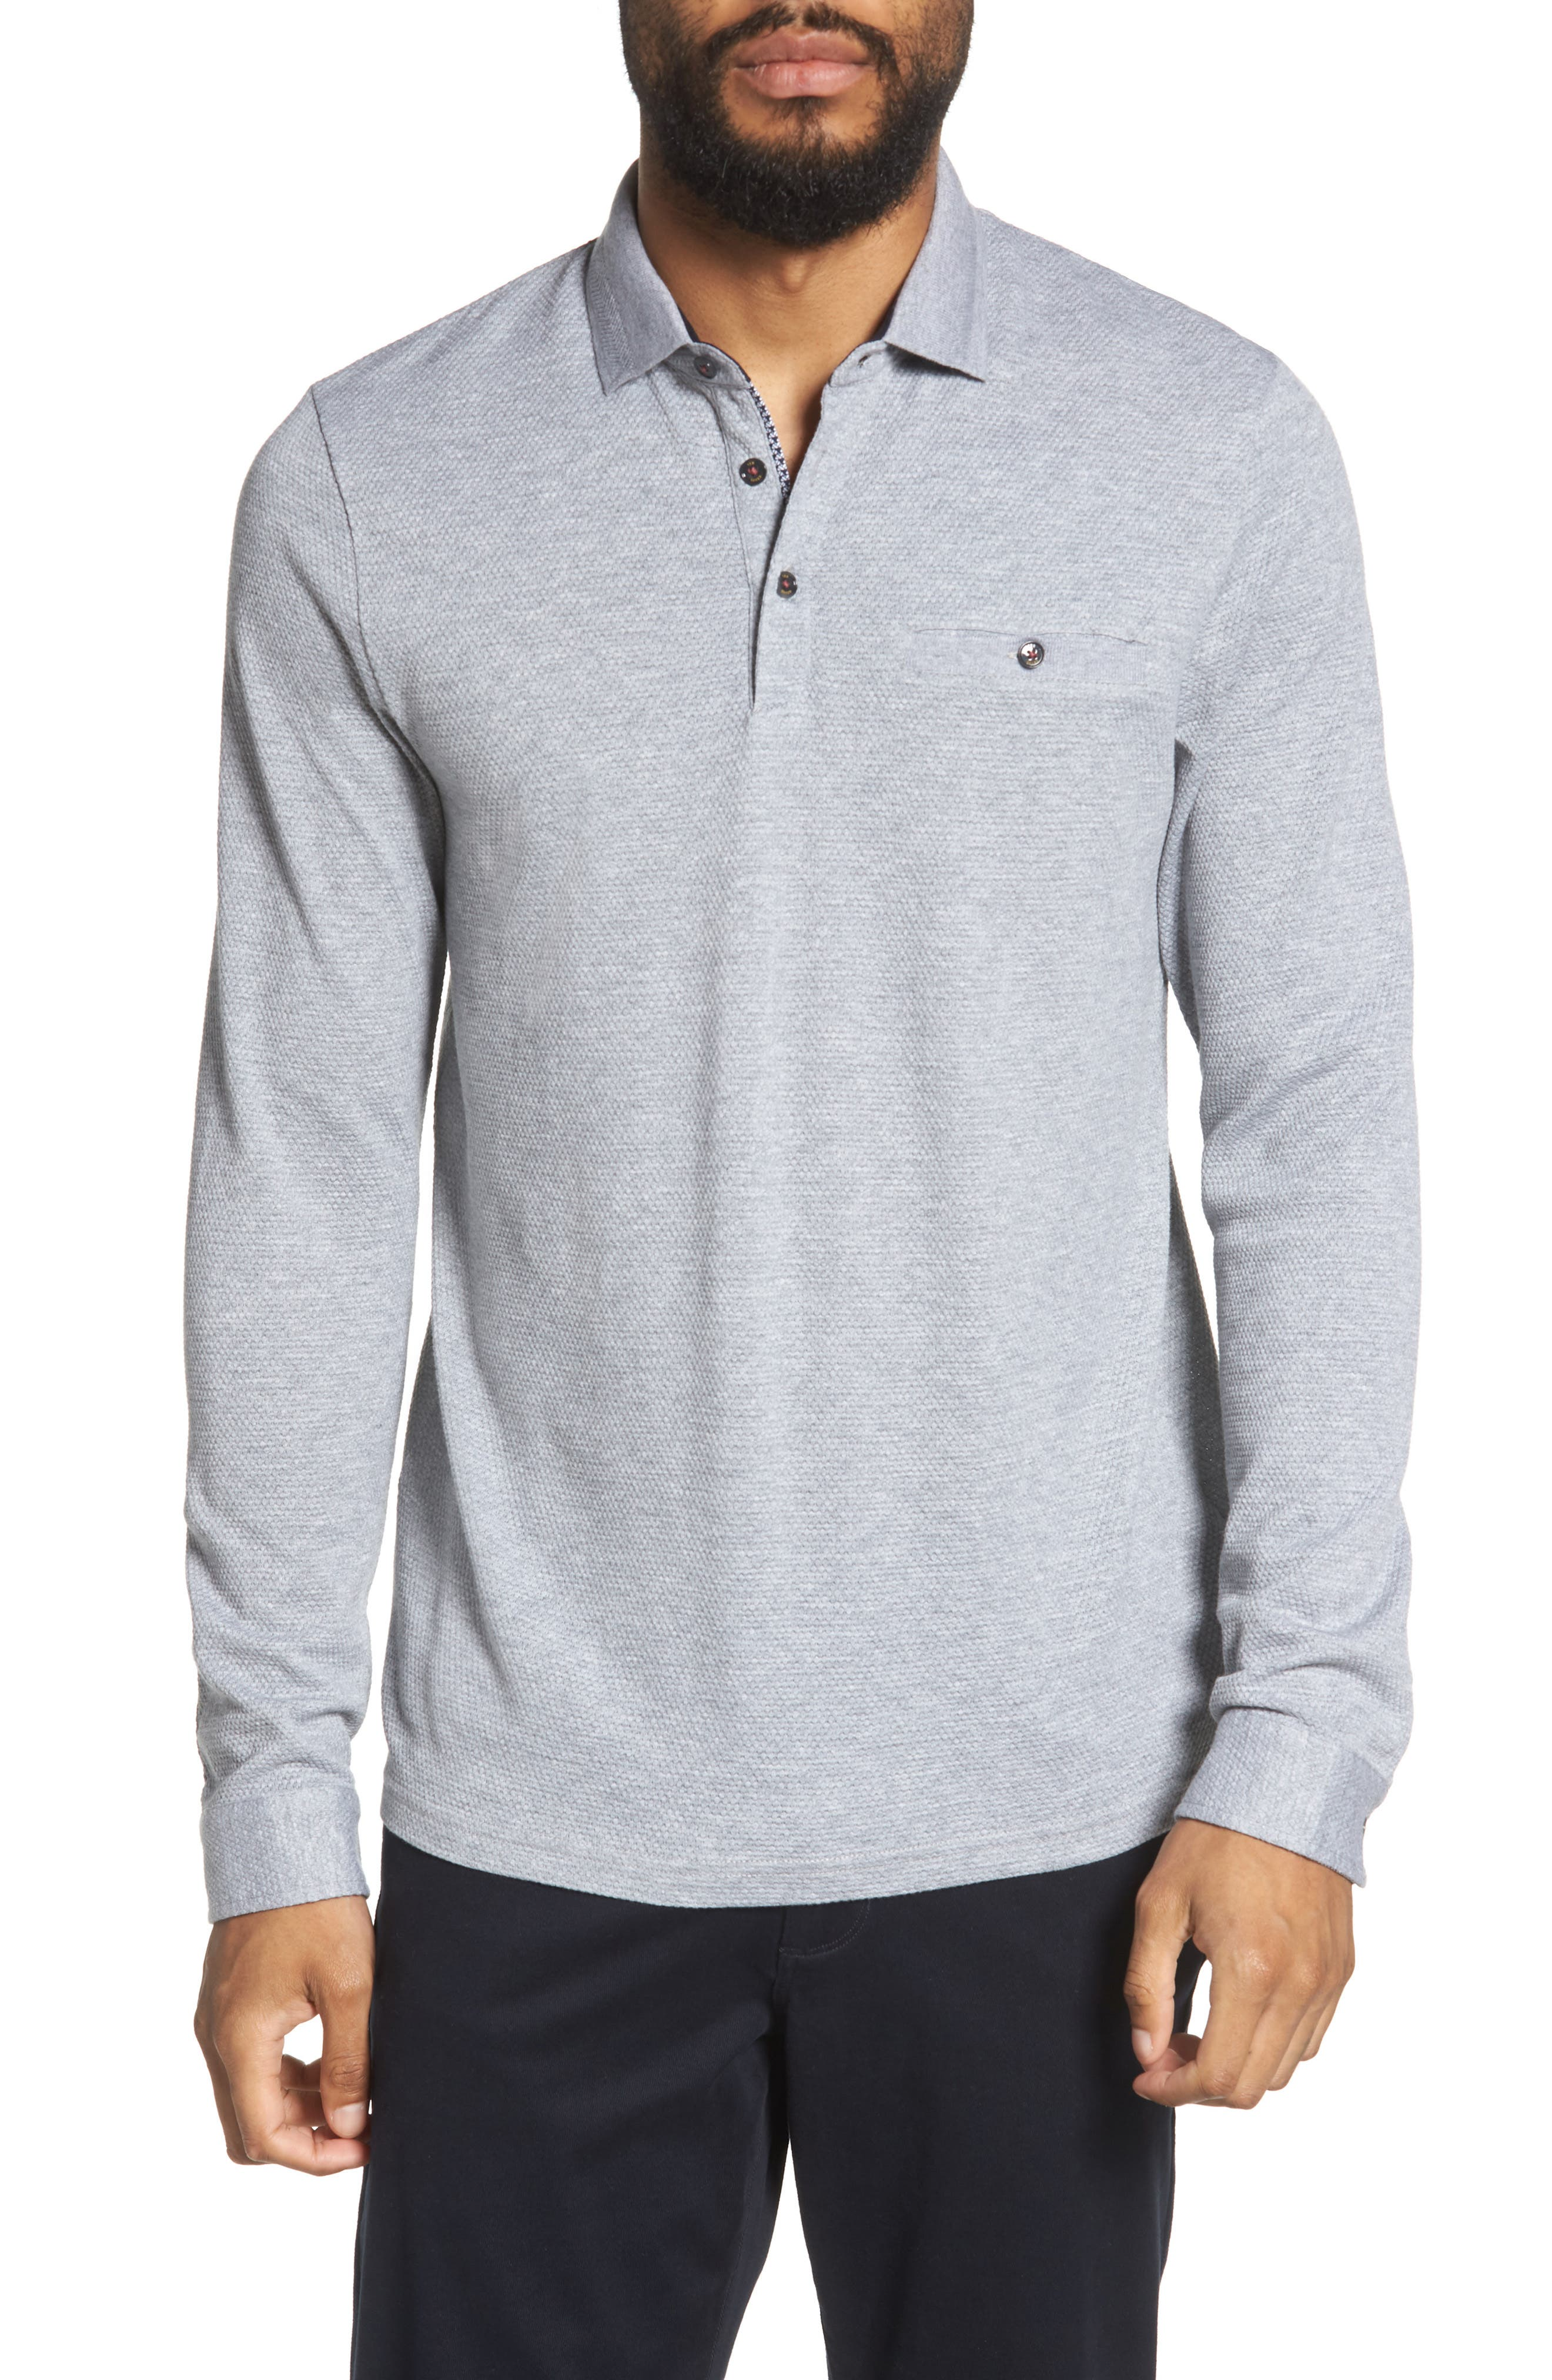 Scooby Trim Fit Long Sleeve Polo Shirt,                             Main thumbnail 1, color,                             Grey Marl